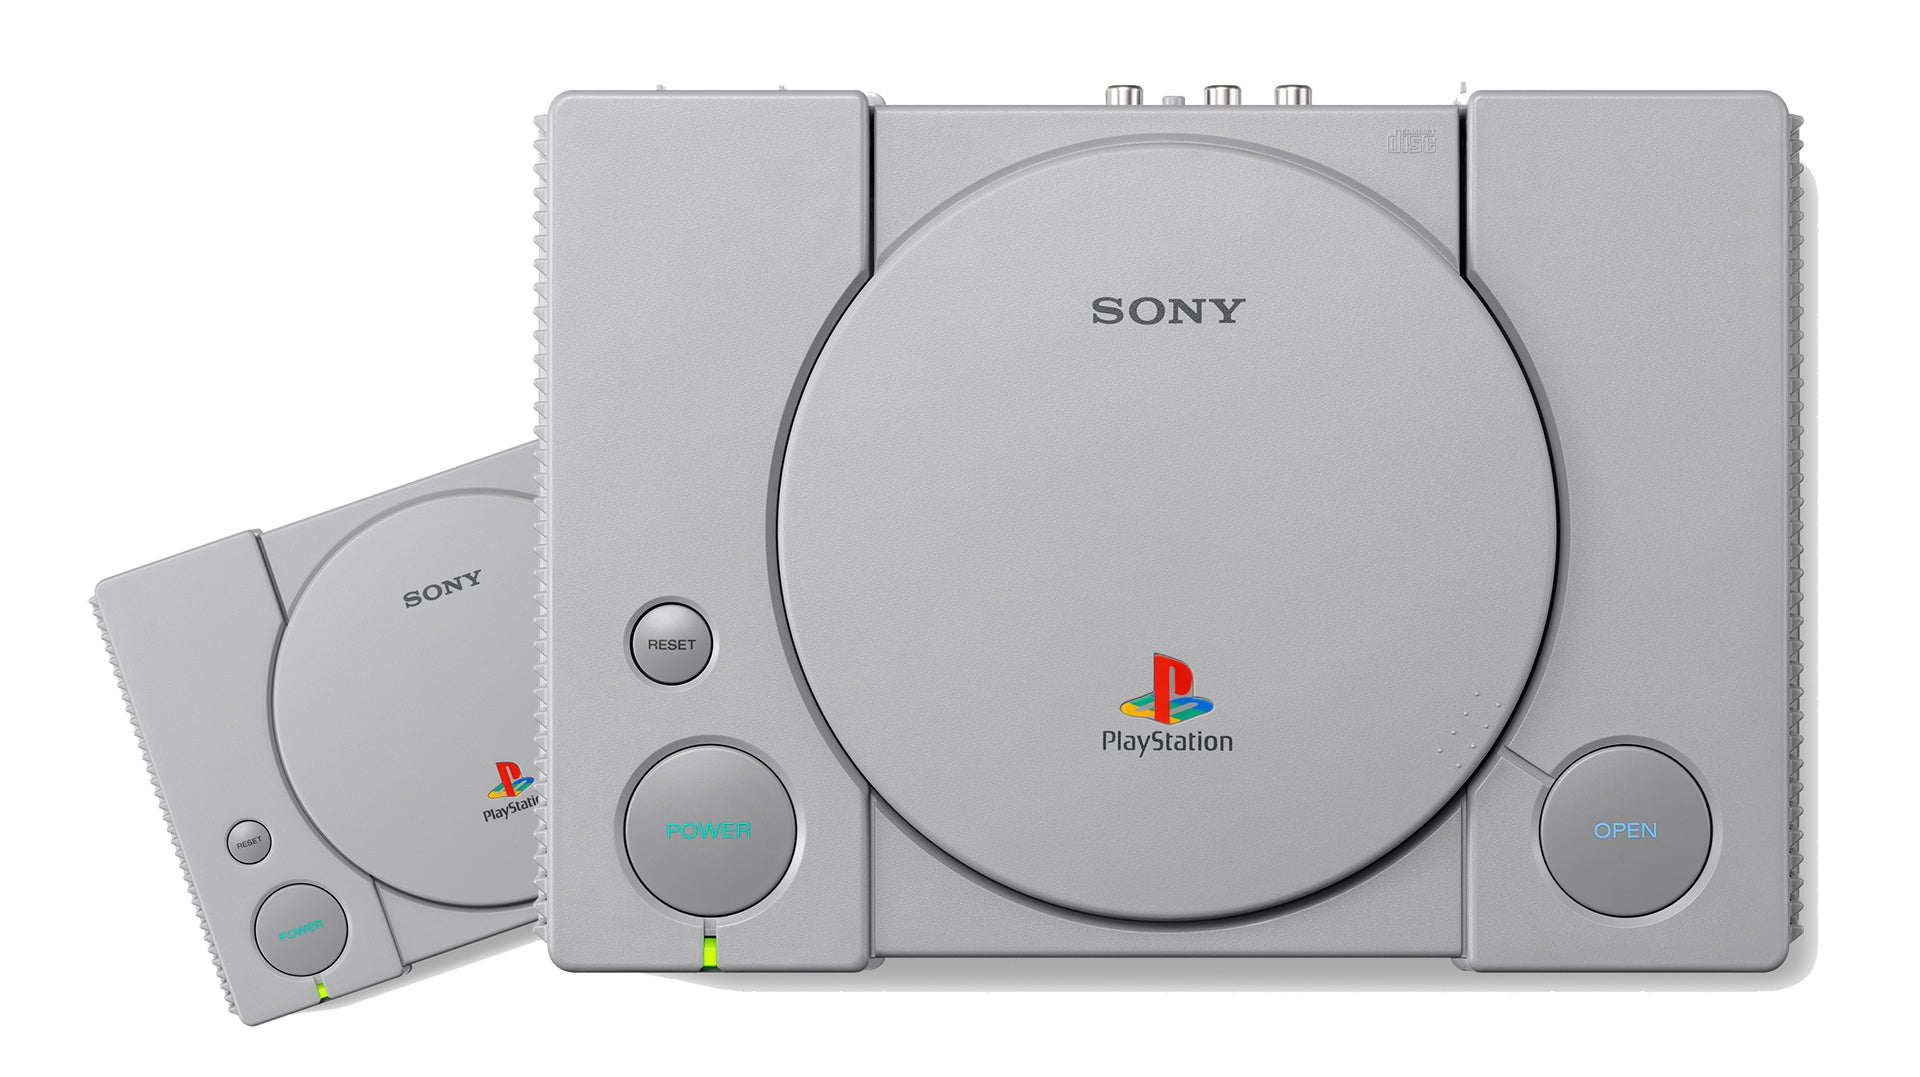 Seven Ways To Make The PlayStation Classic Feel Like The Real Thing